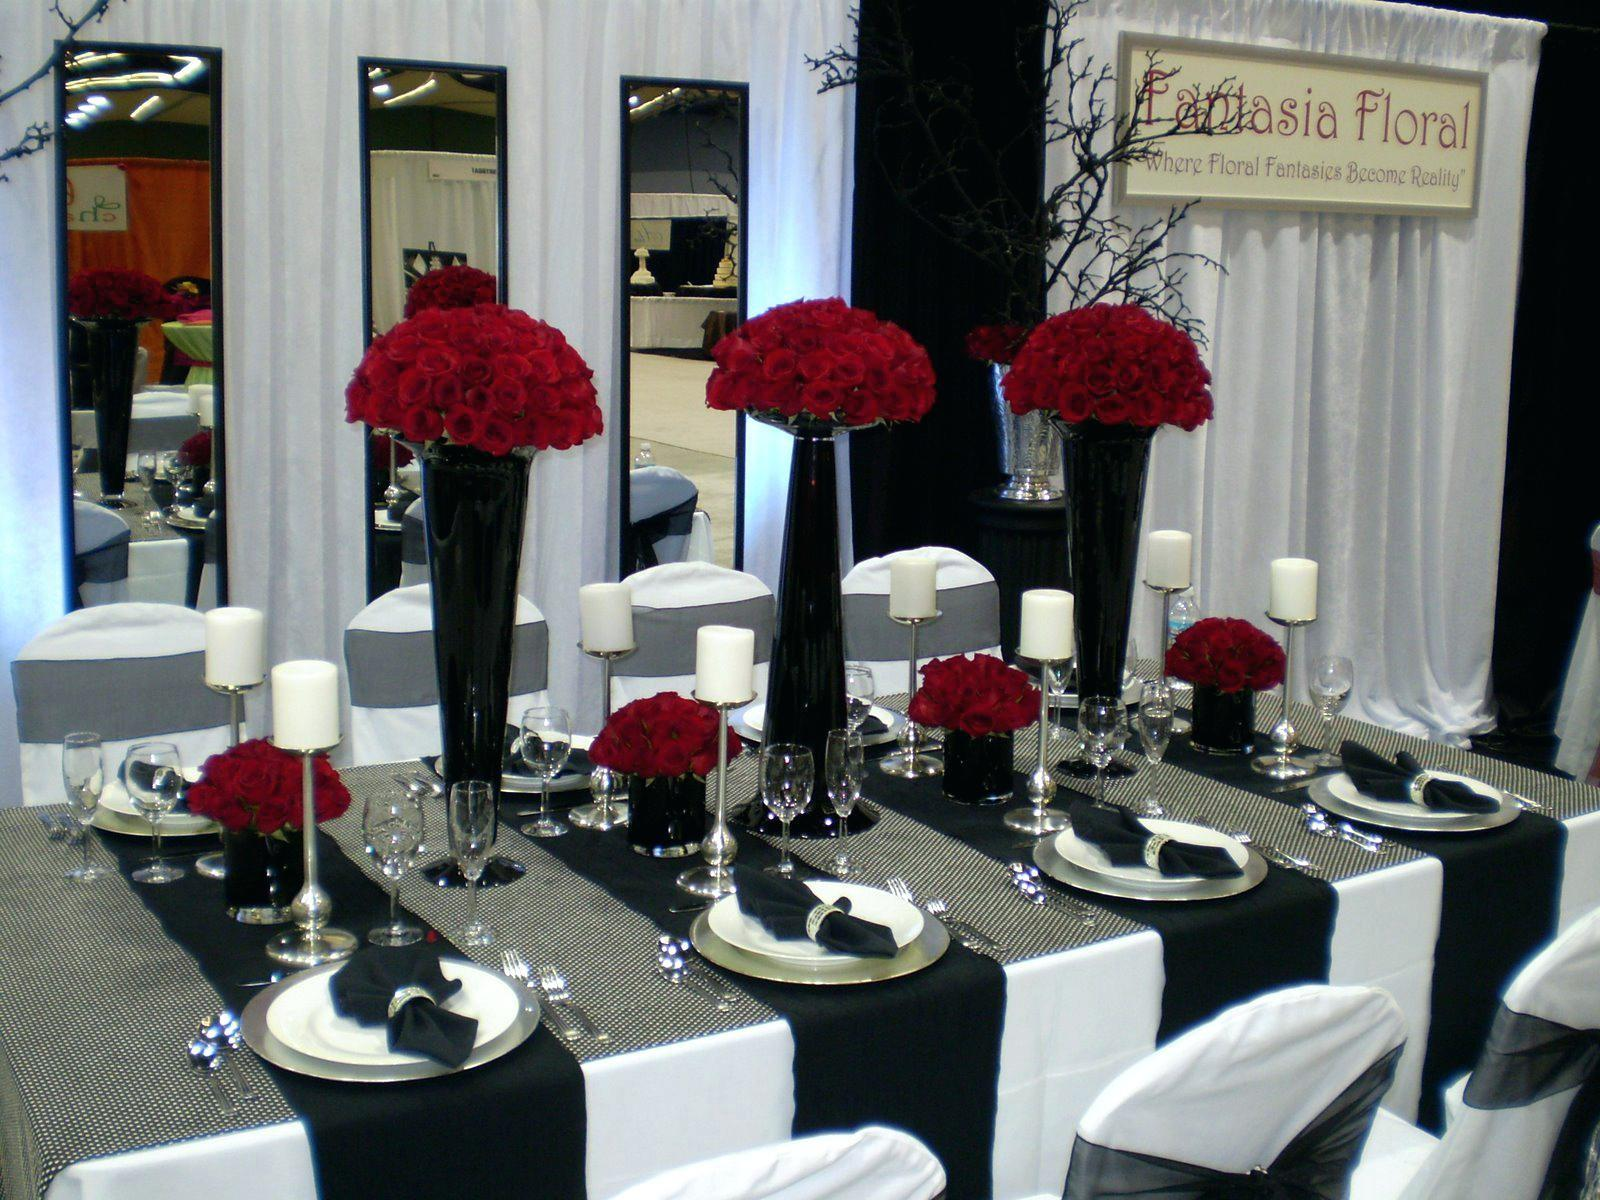 Black White Red Wedding Table Settings Settingsred Decoratorist 125878,Rudolph The Red Nosed Reindeer The Movie Vhs